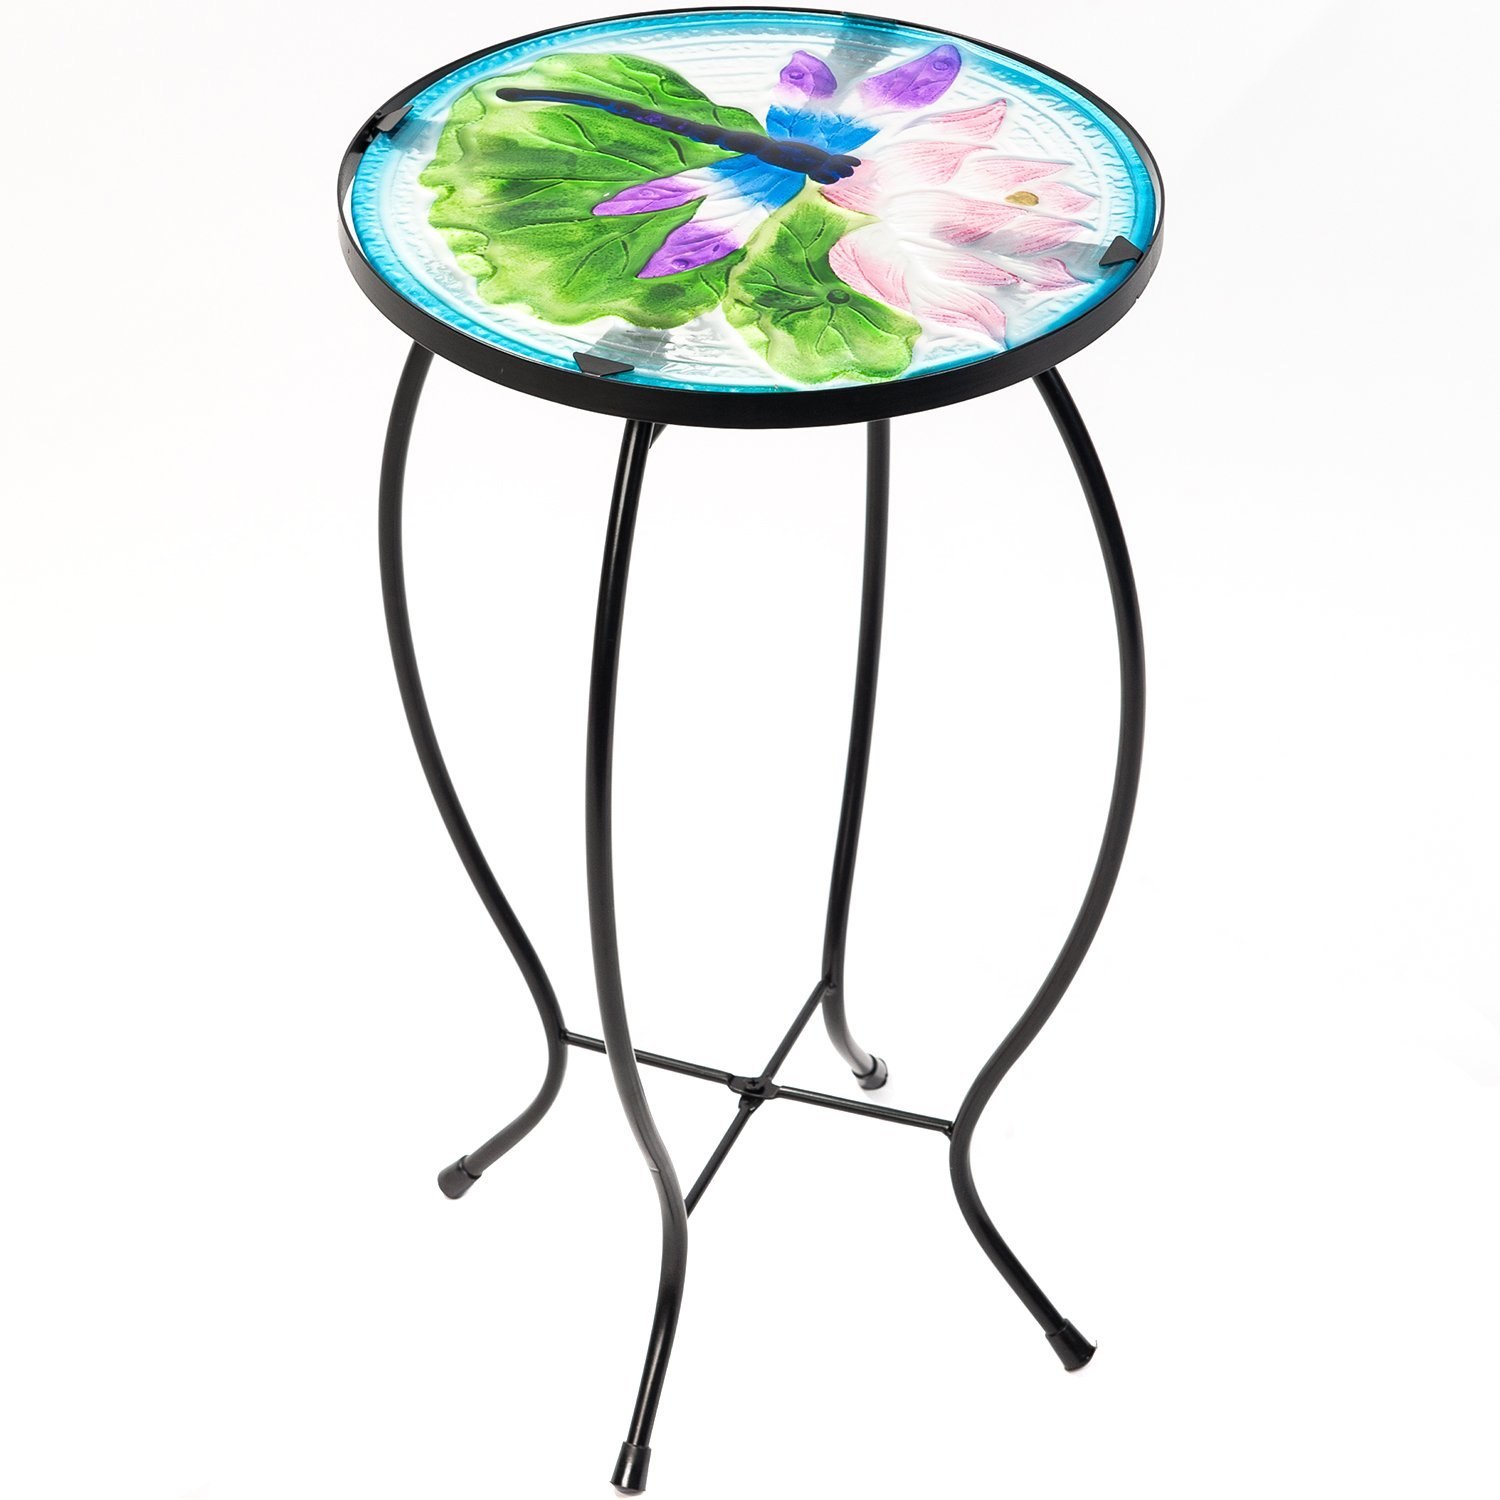 side table outdoor garden patio metal accent desk round hand painted glass blue home decor sheesham wood console bar height green tiffany lamp bronze end tables top coffee small